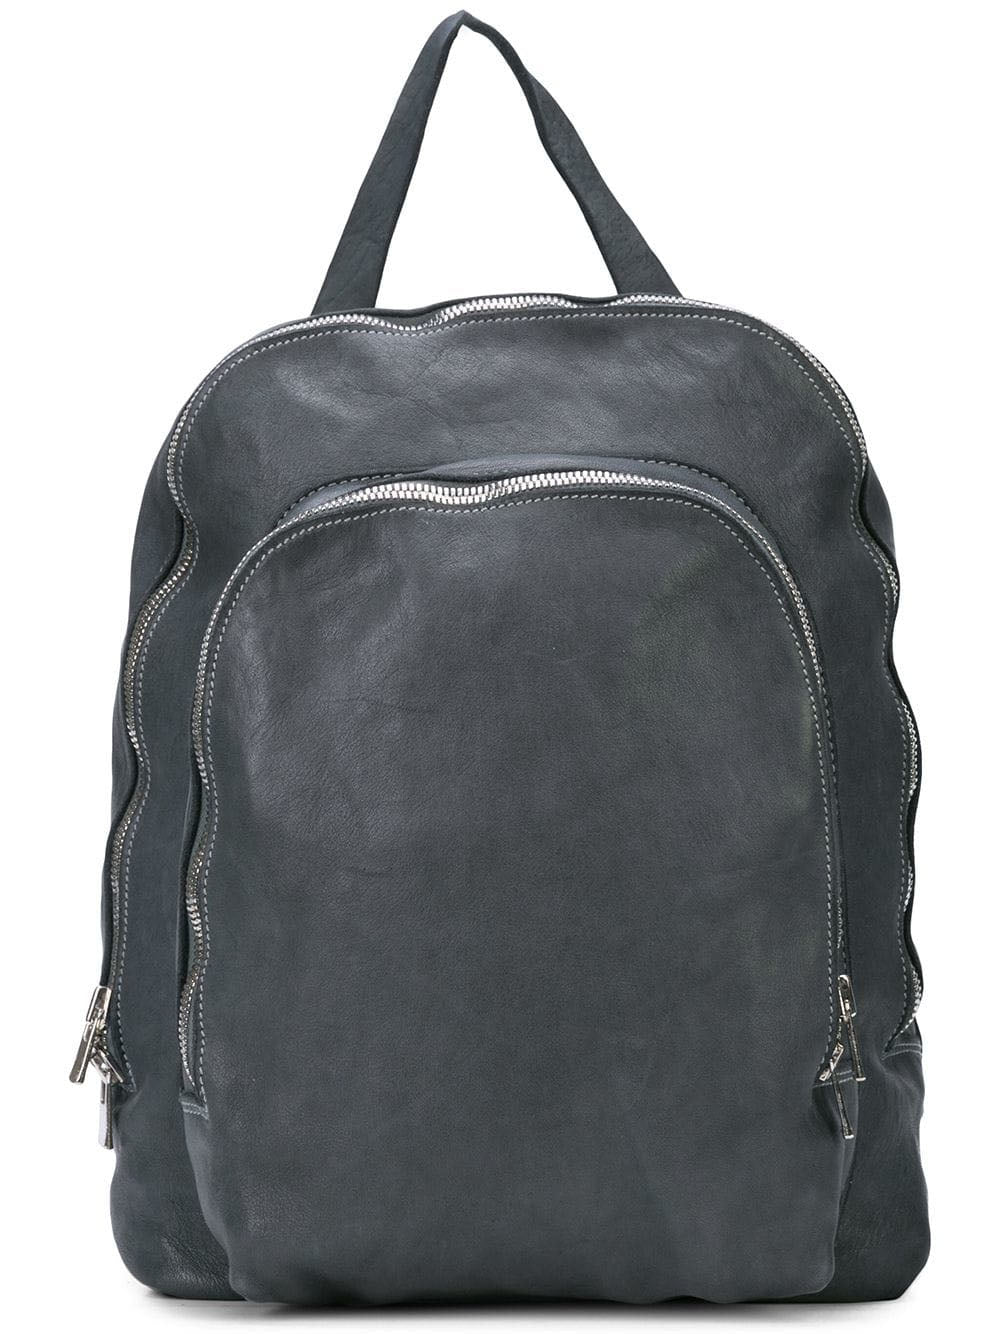 BACKPACK WITH 2 ZIP POCKETS